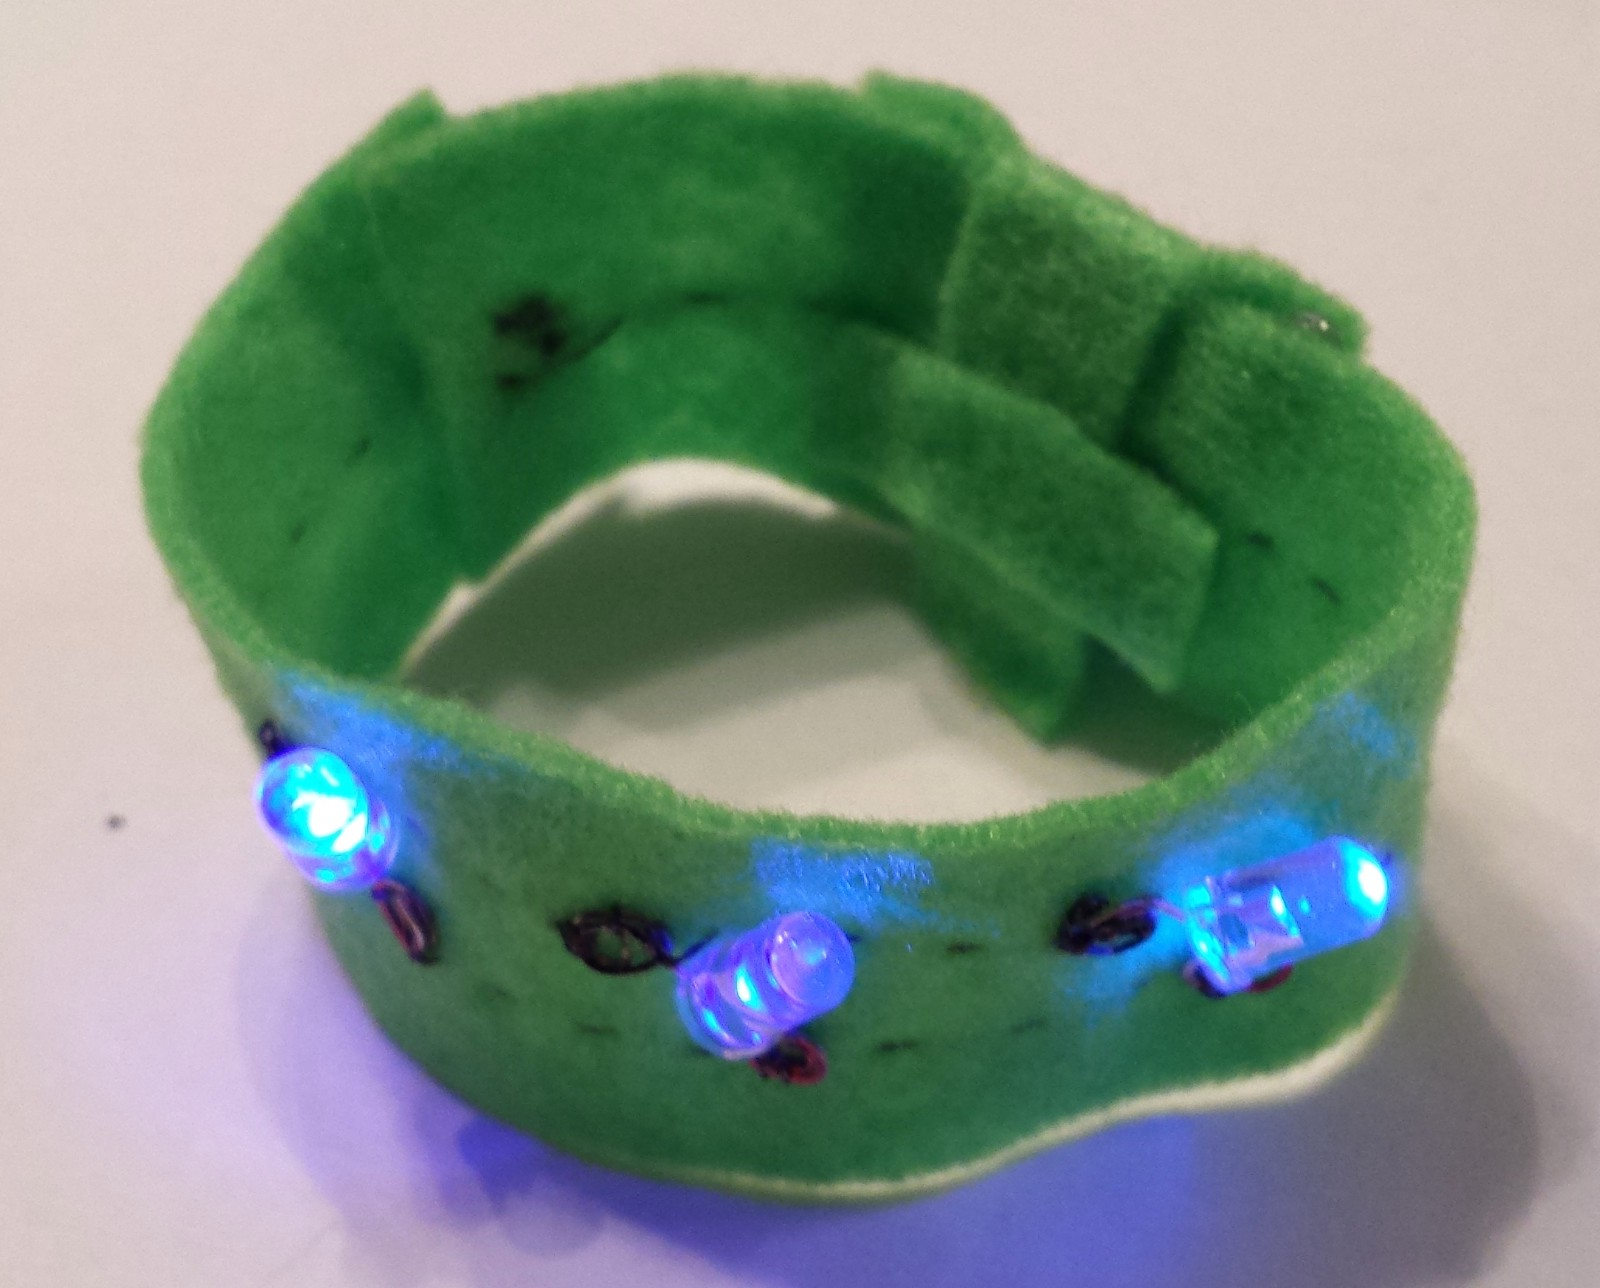 Soft Circuit Bracelet Build Jessica Hogan Medium To The Light Emitting Diode Using Snap Circuits Do It Yourself Since Is Complete And Working You Can Embellish Your Leds With Felt Flower Details Embroidery Floss If Youd Like